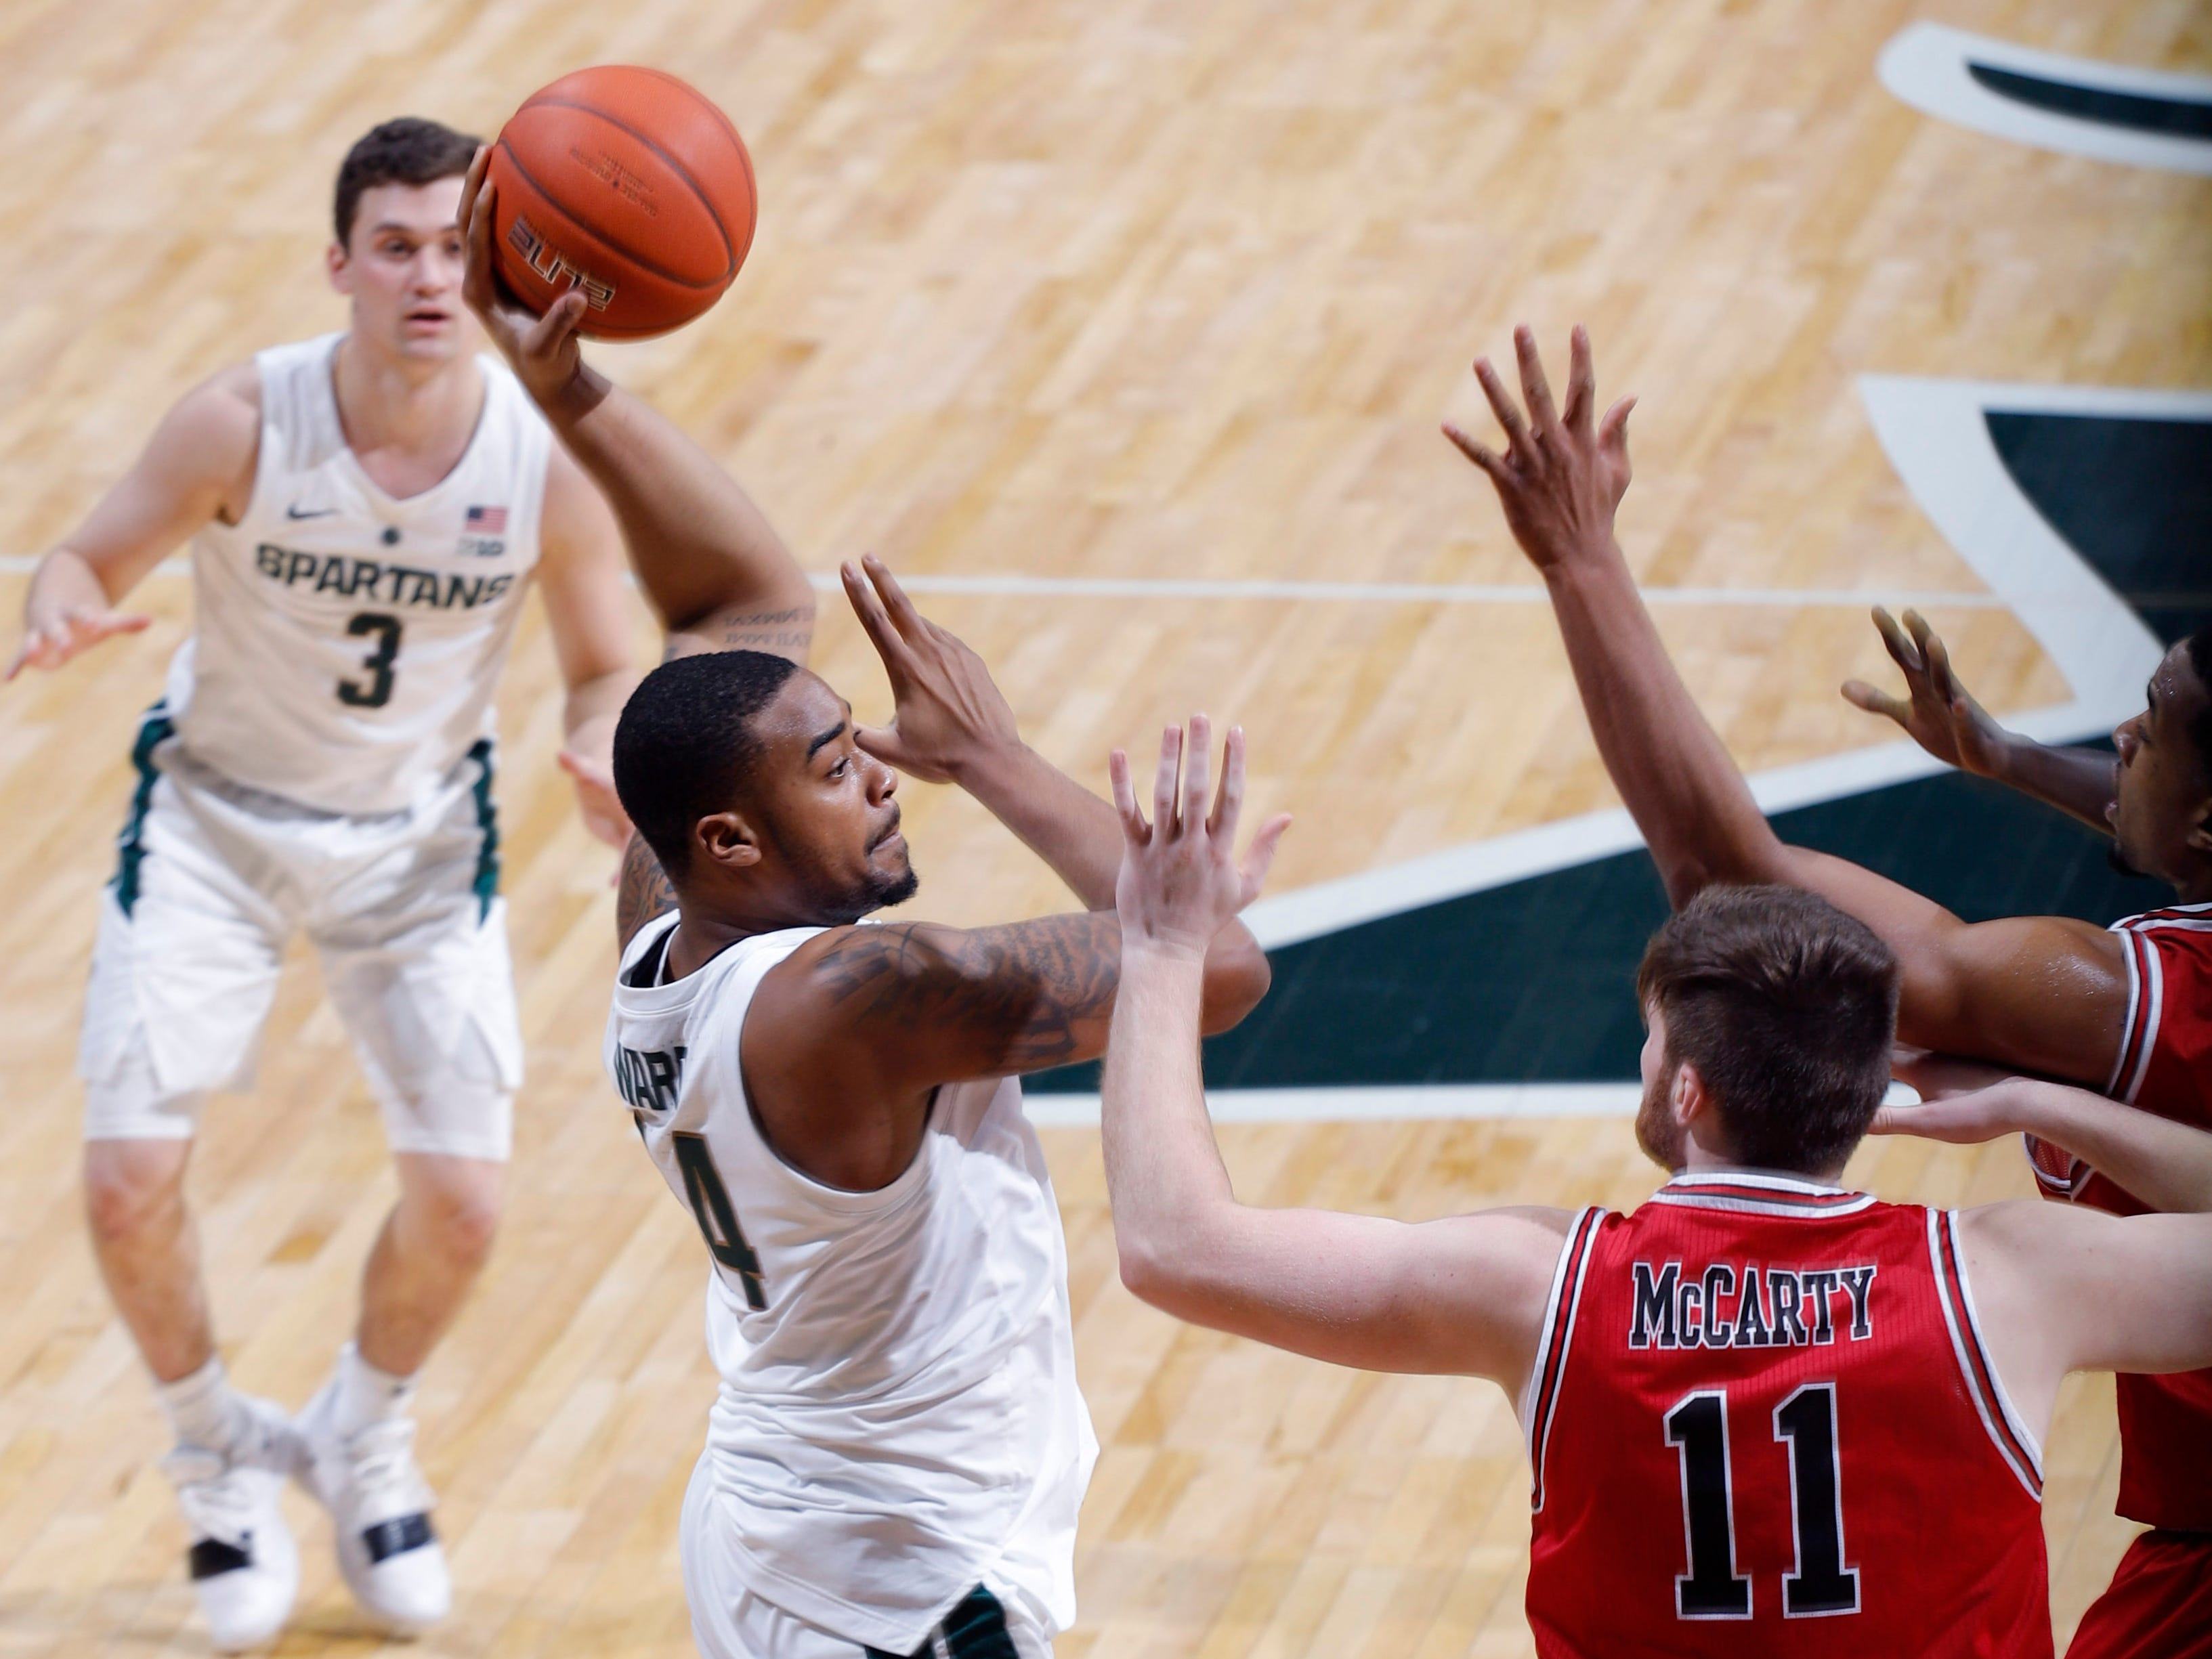 Michigan State's Nick Ward, left, passes out of a double team against Northern Illinois' Noah McCarty (11), Saturday, Dec. 29, 2018, in East Lansing, Mich.